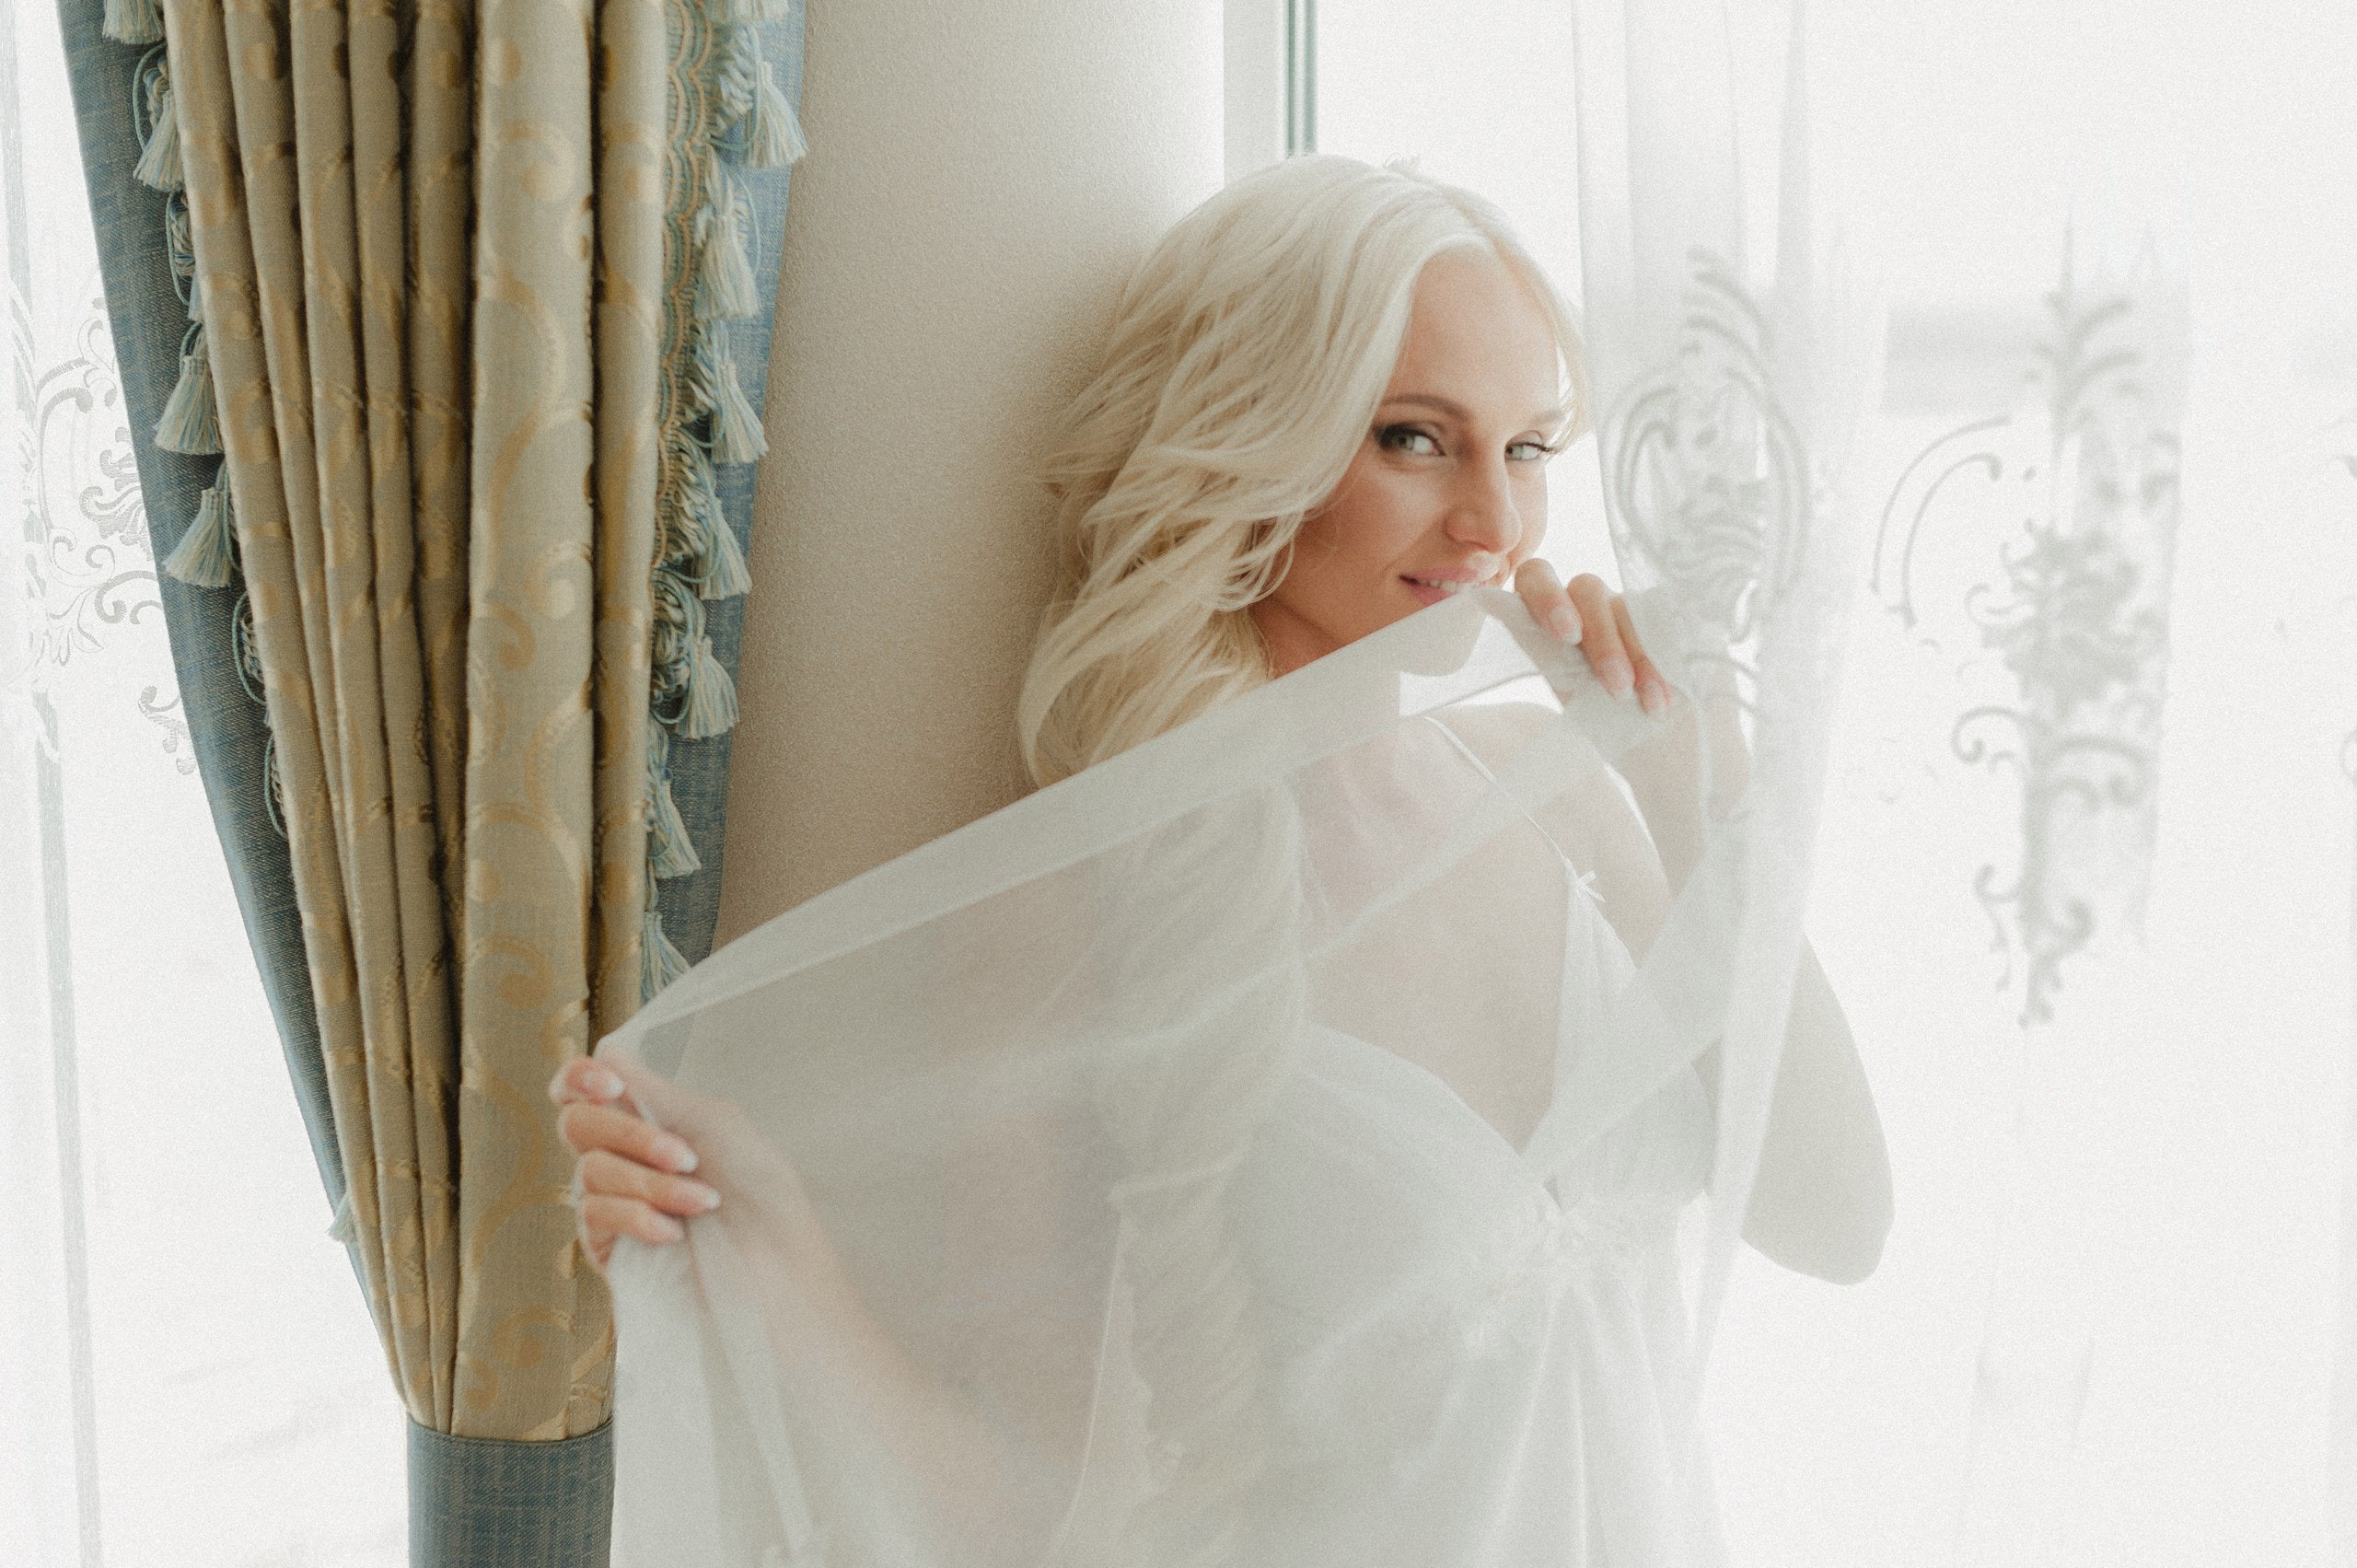 A smiling blonde woman in white gauzy lingerie poses by a window and curtain